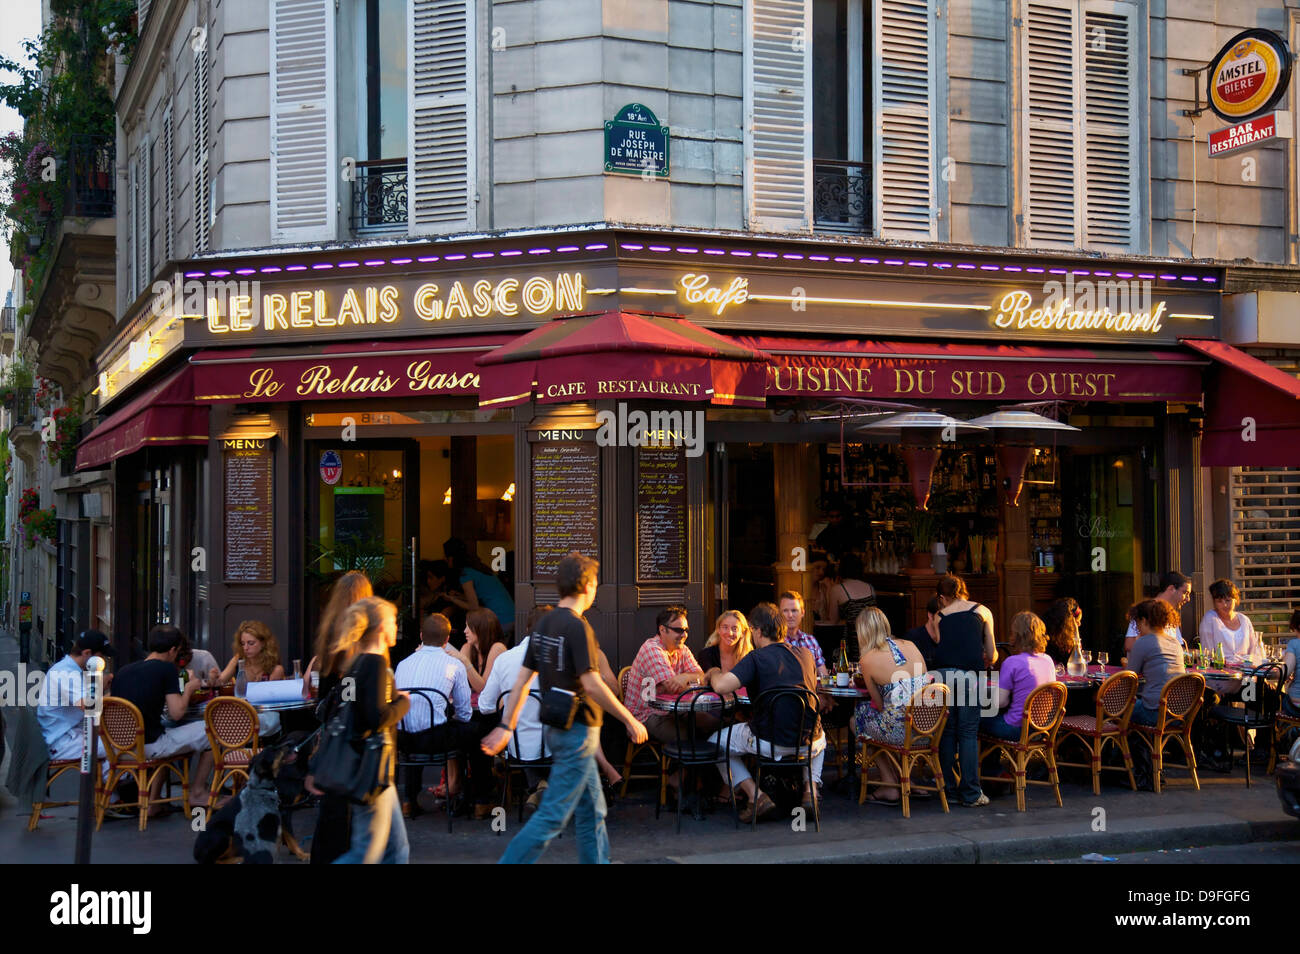 Restaurant In Montmartre Paris France Stock Photo 57505268 Alamy